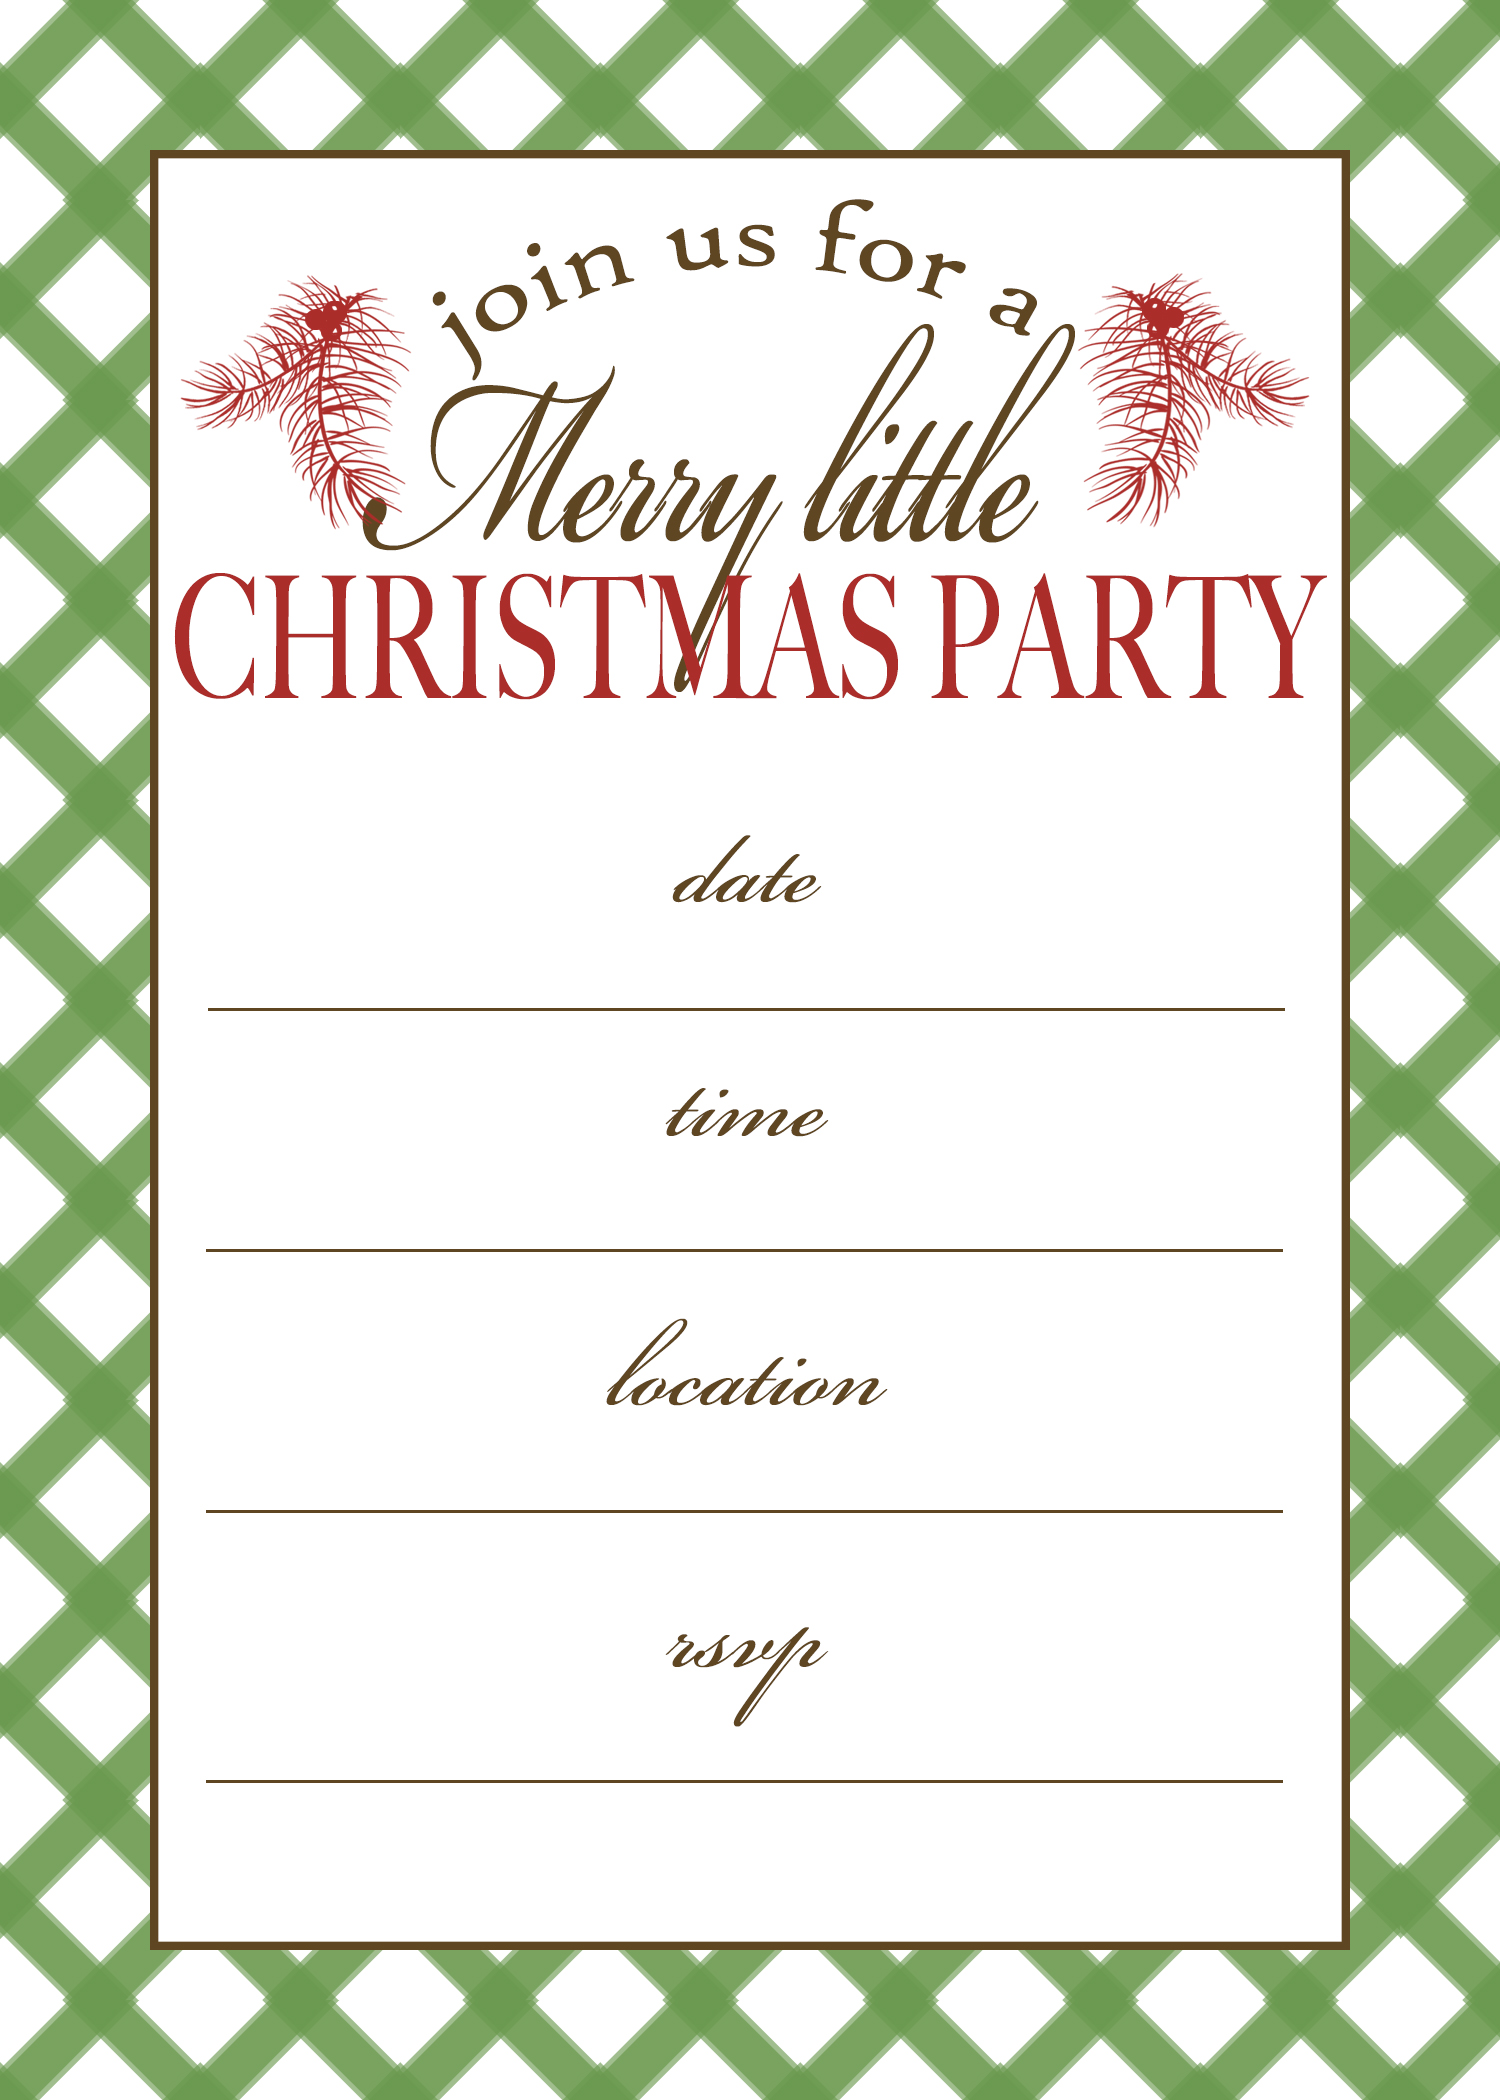 Ideas For Christmas Party Invitations Part - 32: Christmas Pajama Party Invitations